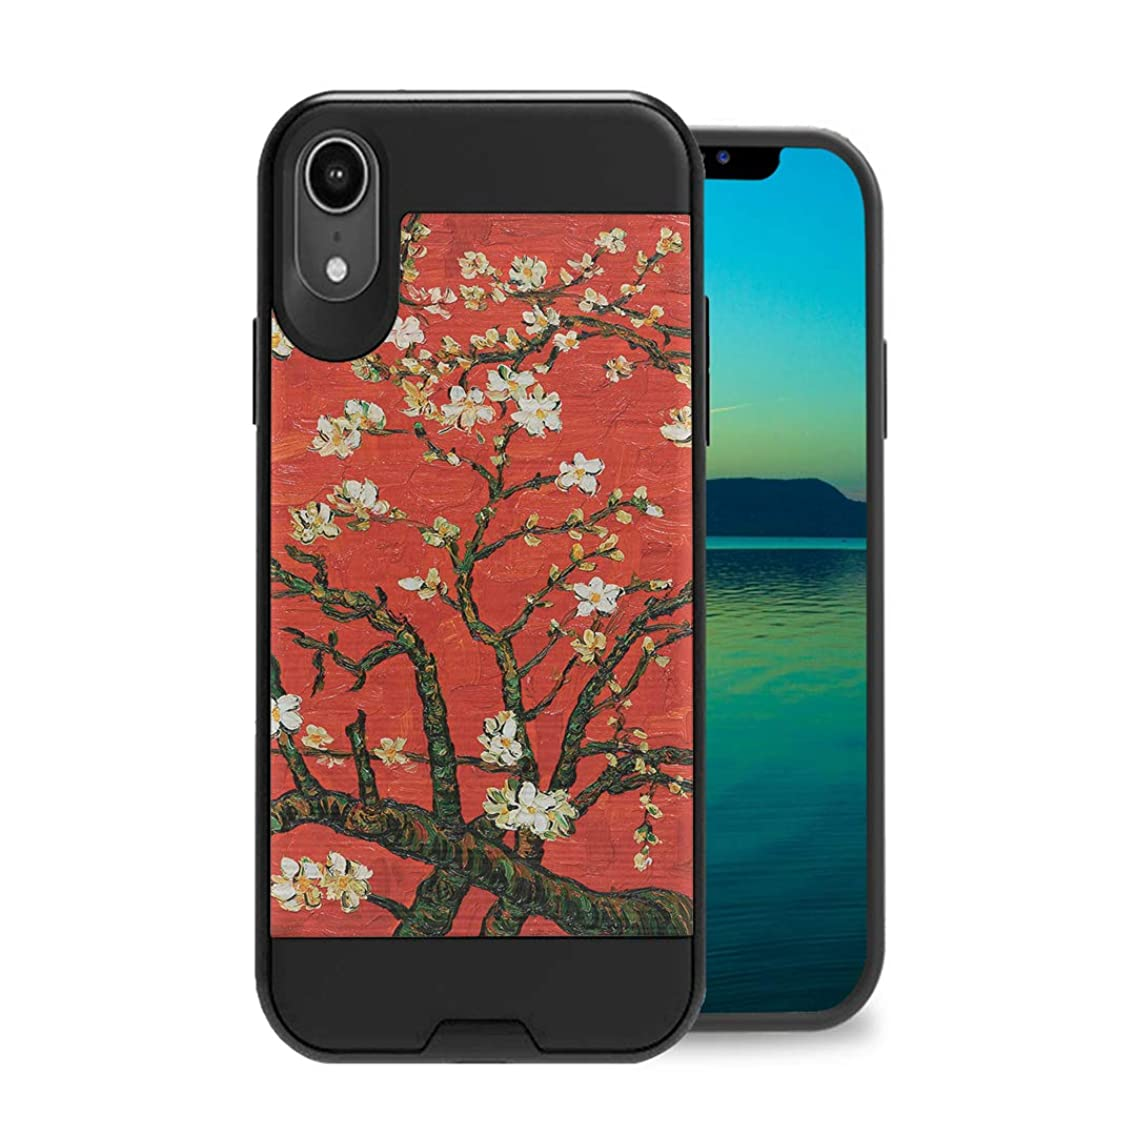 Zicomaxcap Case Compatible with iPhone Xs Max [Hybrid Fusion Supports Qi Wireless Charging Dual Layer Slick Armor Case Black] for iPhone Xs Max - (Red Almond Branches in Bloom)